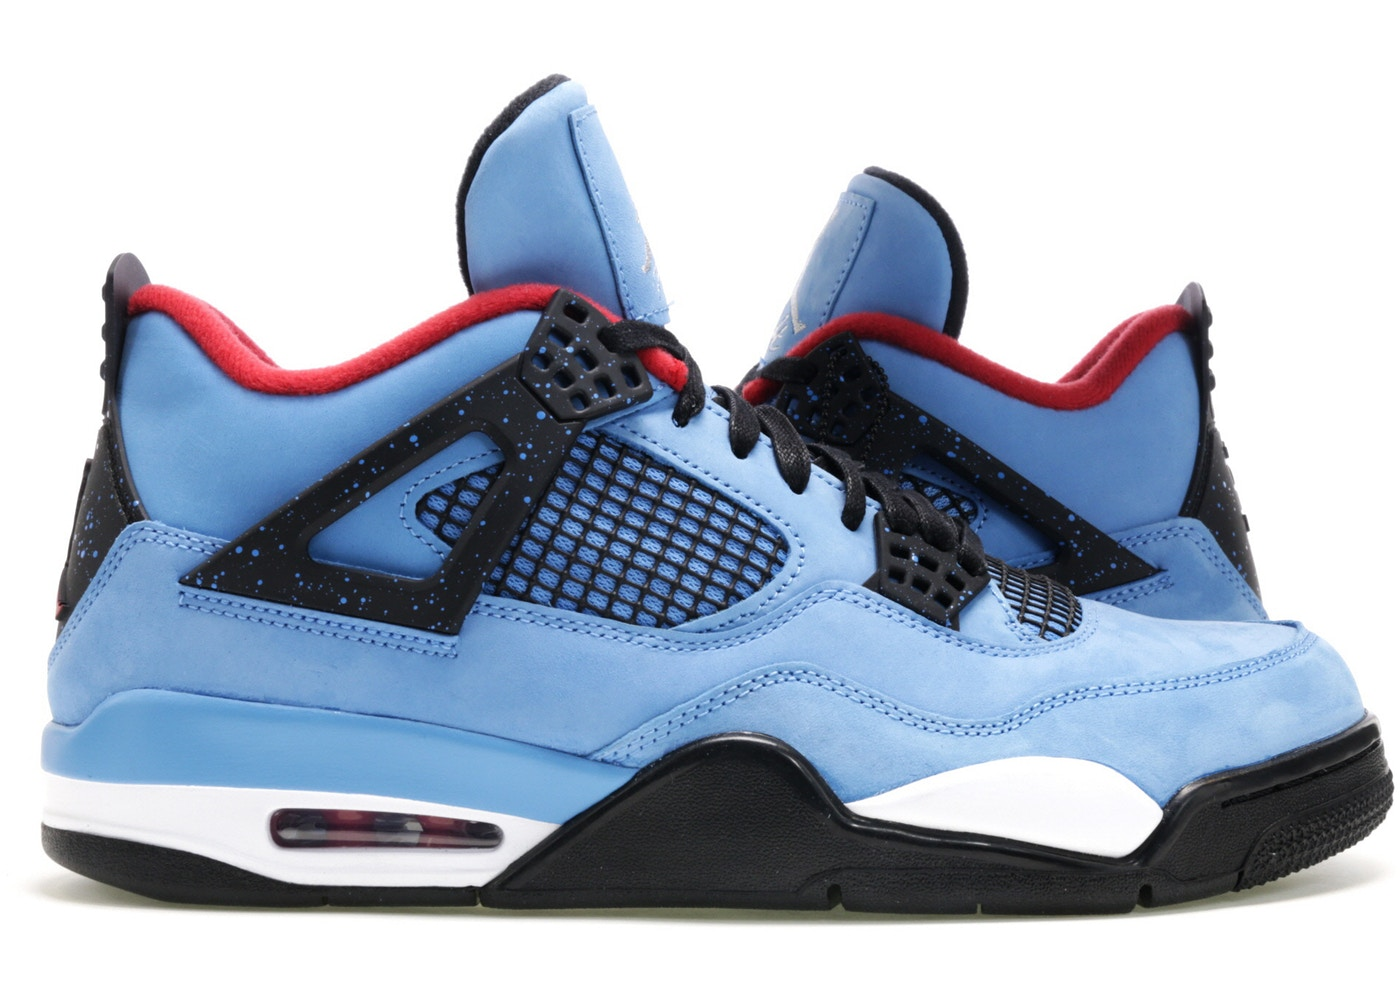 sports shoes a83fa d869f ... greece travis scott x air jordan 4 retro colorway university blue black  varsity red style 308497